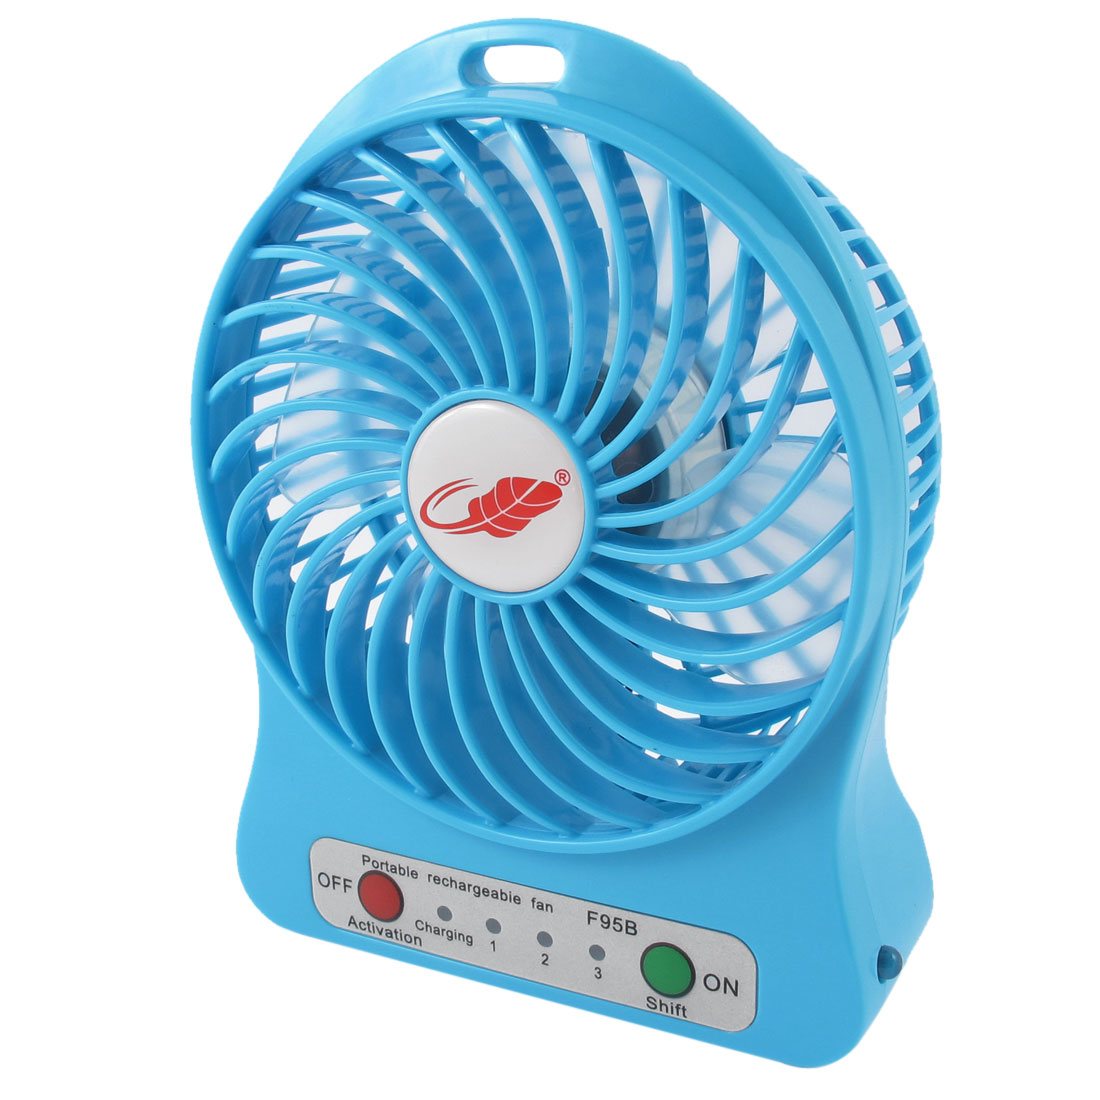 DC5V 4.5W Home Office Desk Portable Multifunction Mini Cooling Fan Blue